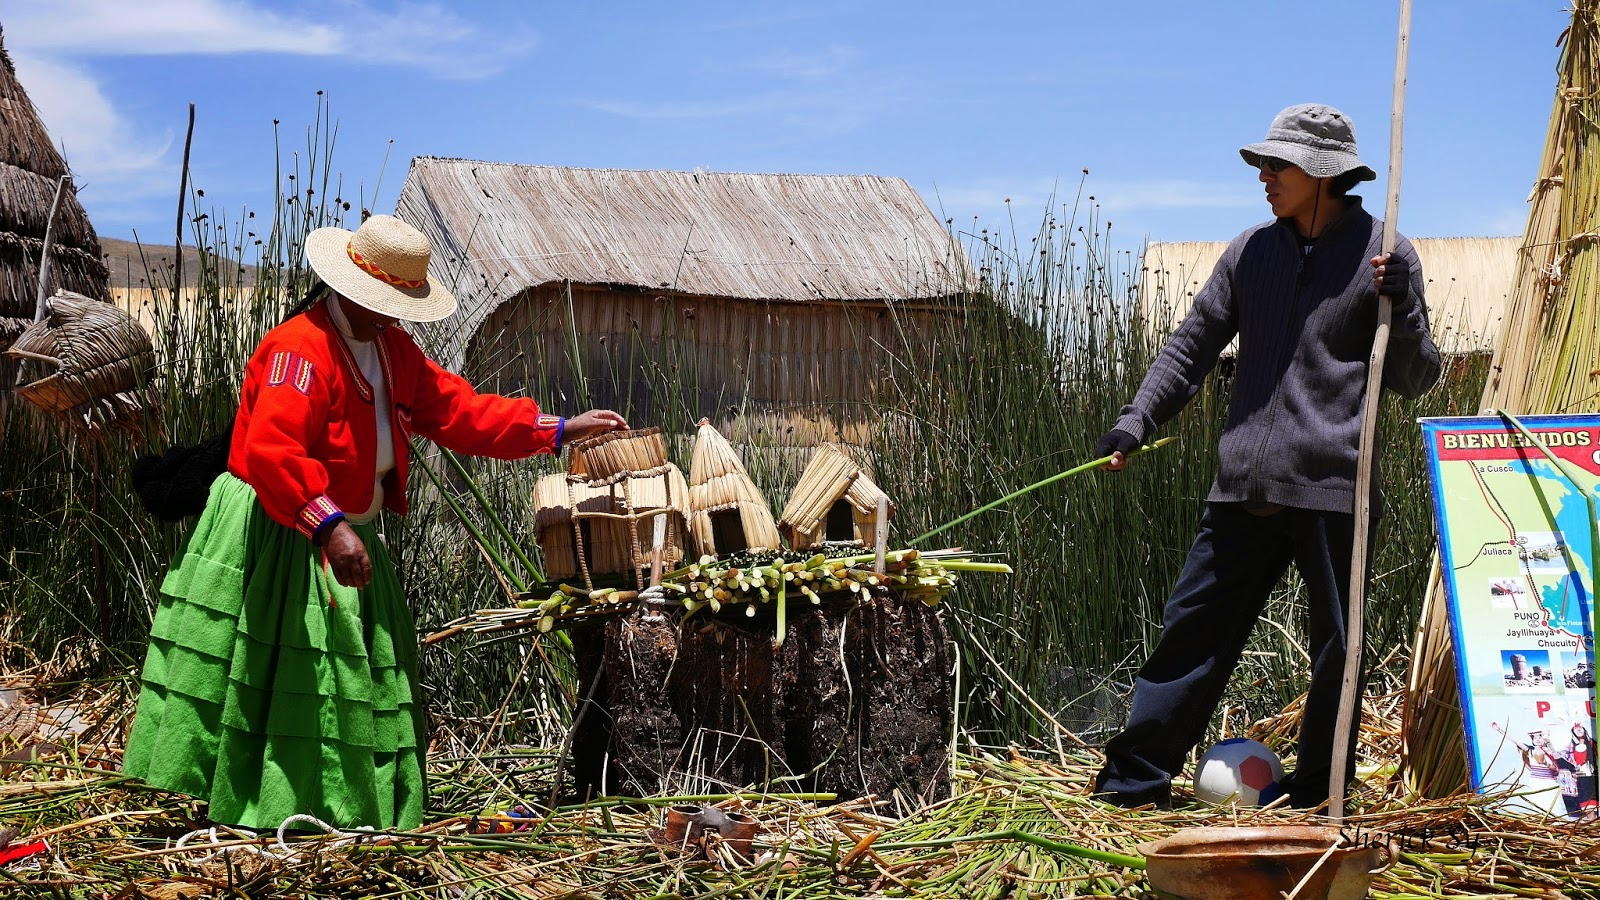 Totora Reed Islands, Uros, Puno, Peru